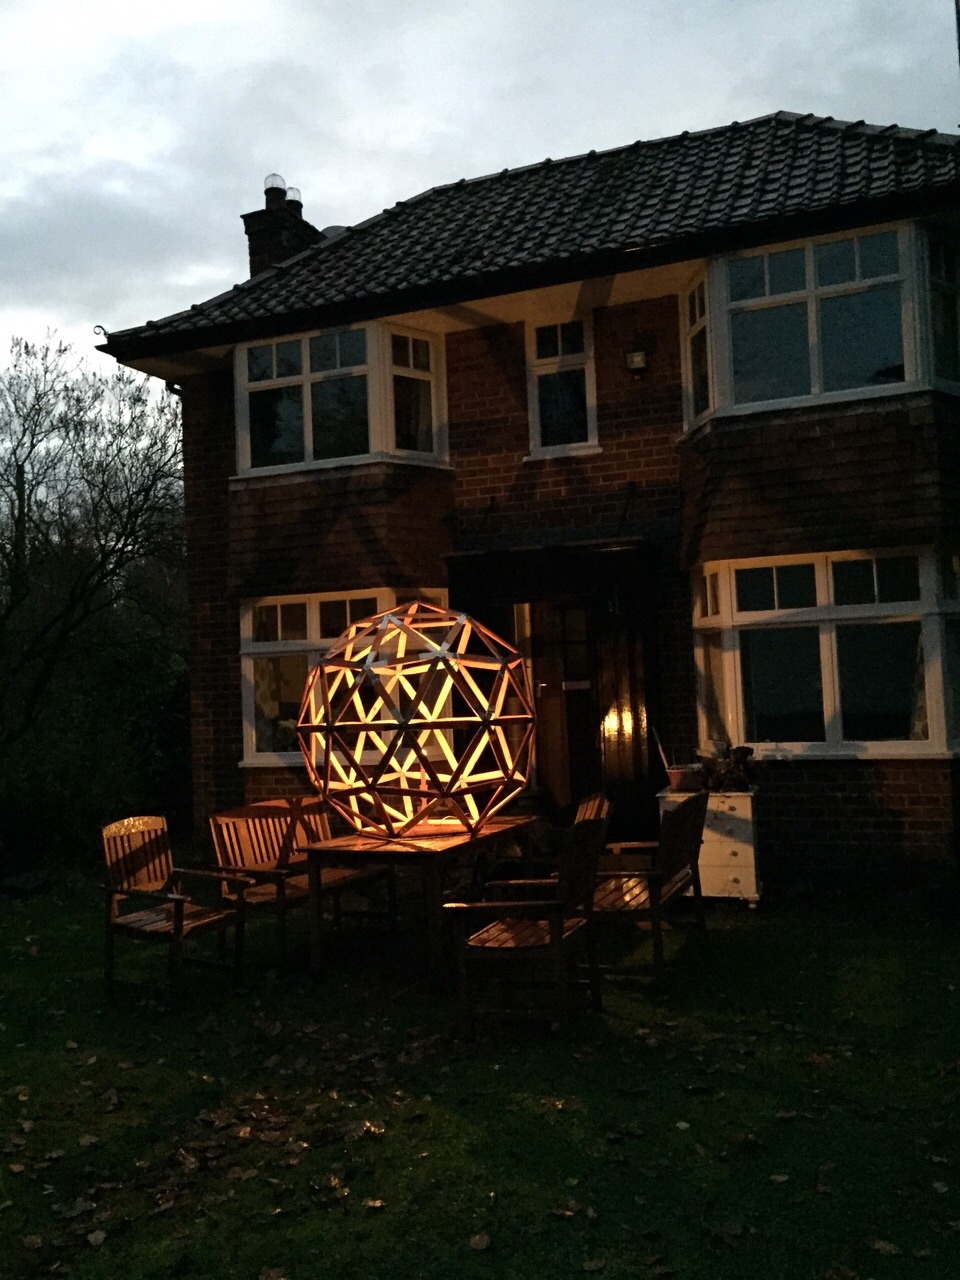 Prices for a geodesic sphere start at £999.00 - please contact me for a quote depending on your requirements